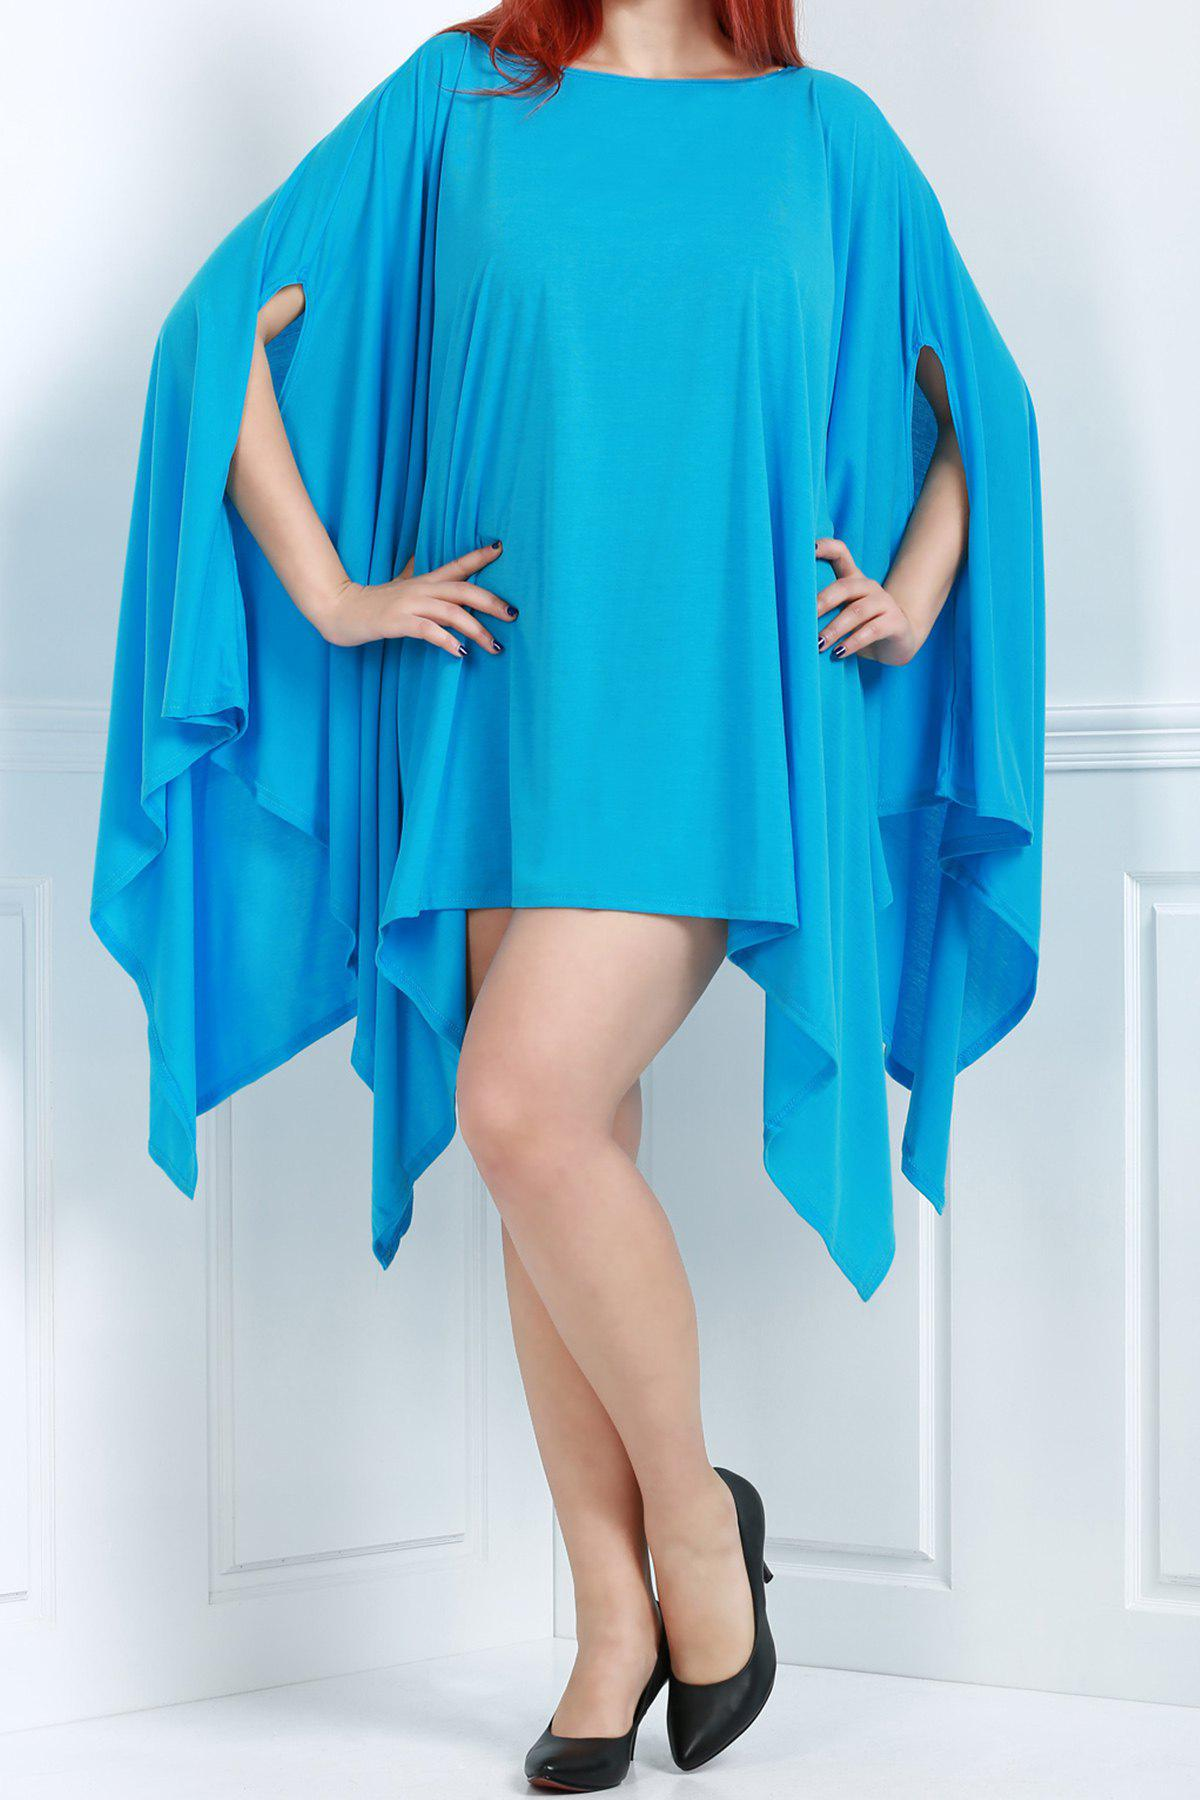 Handkerchief Plus Size Caped Top with Batwing Sleeve - AZURE S